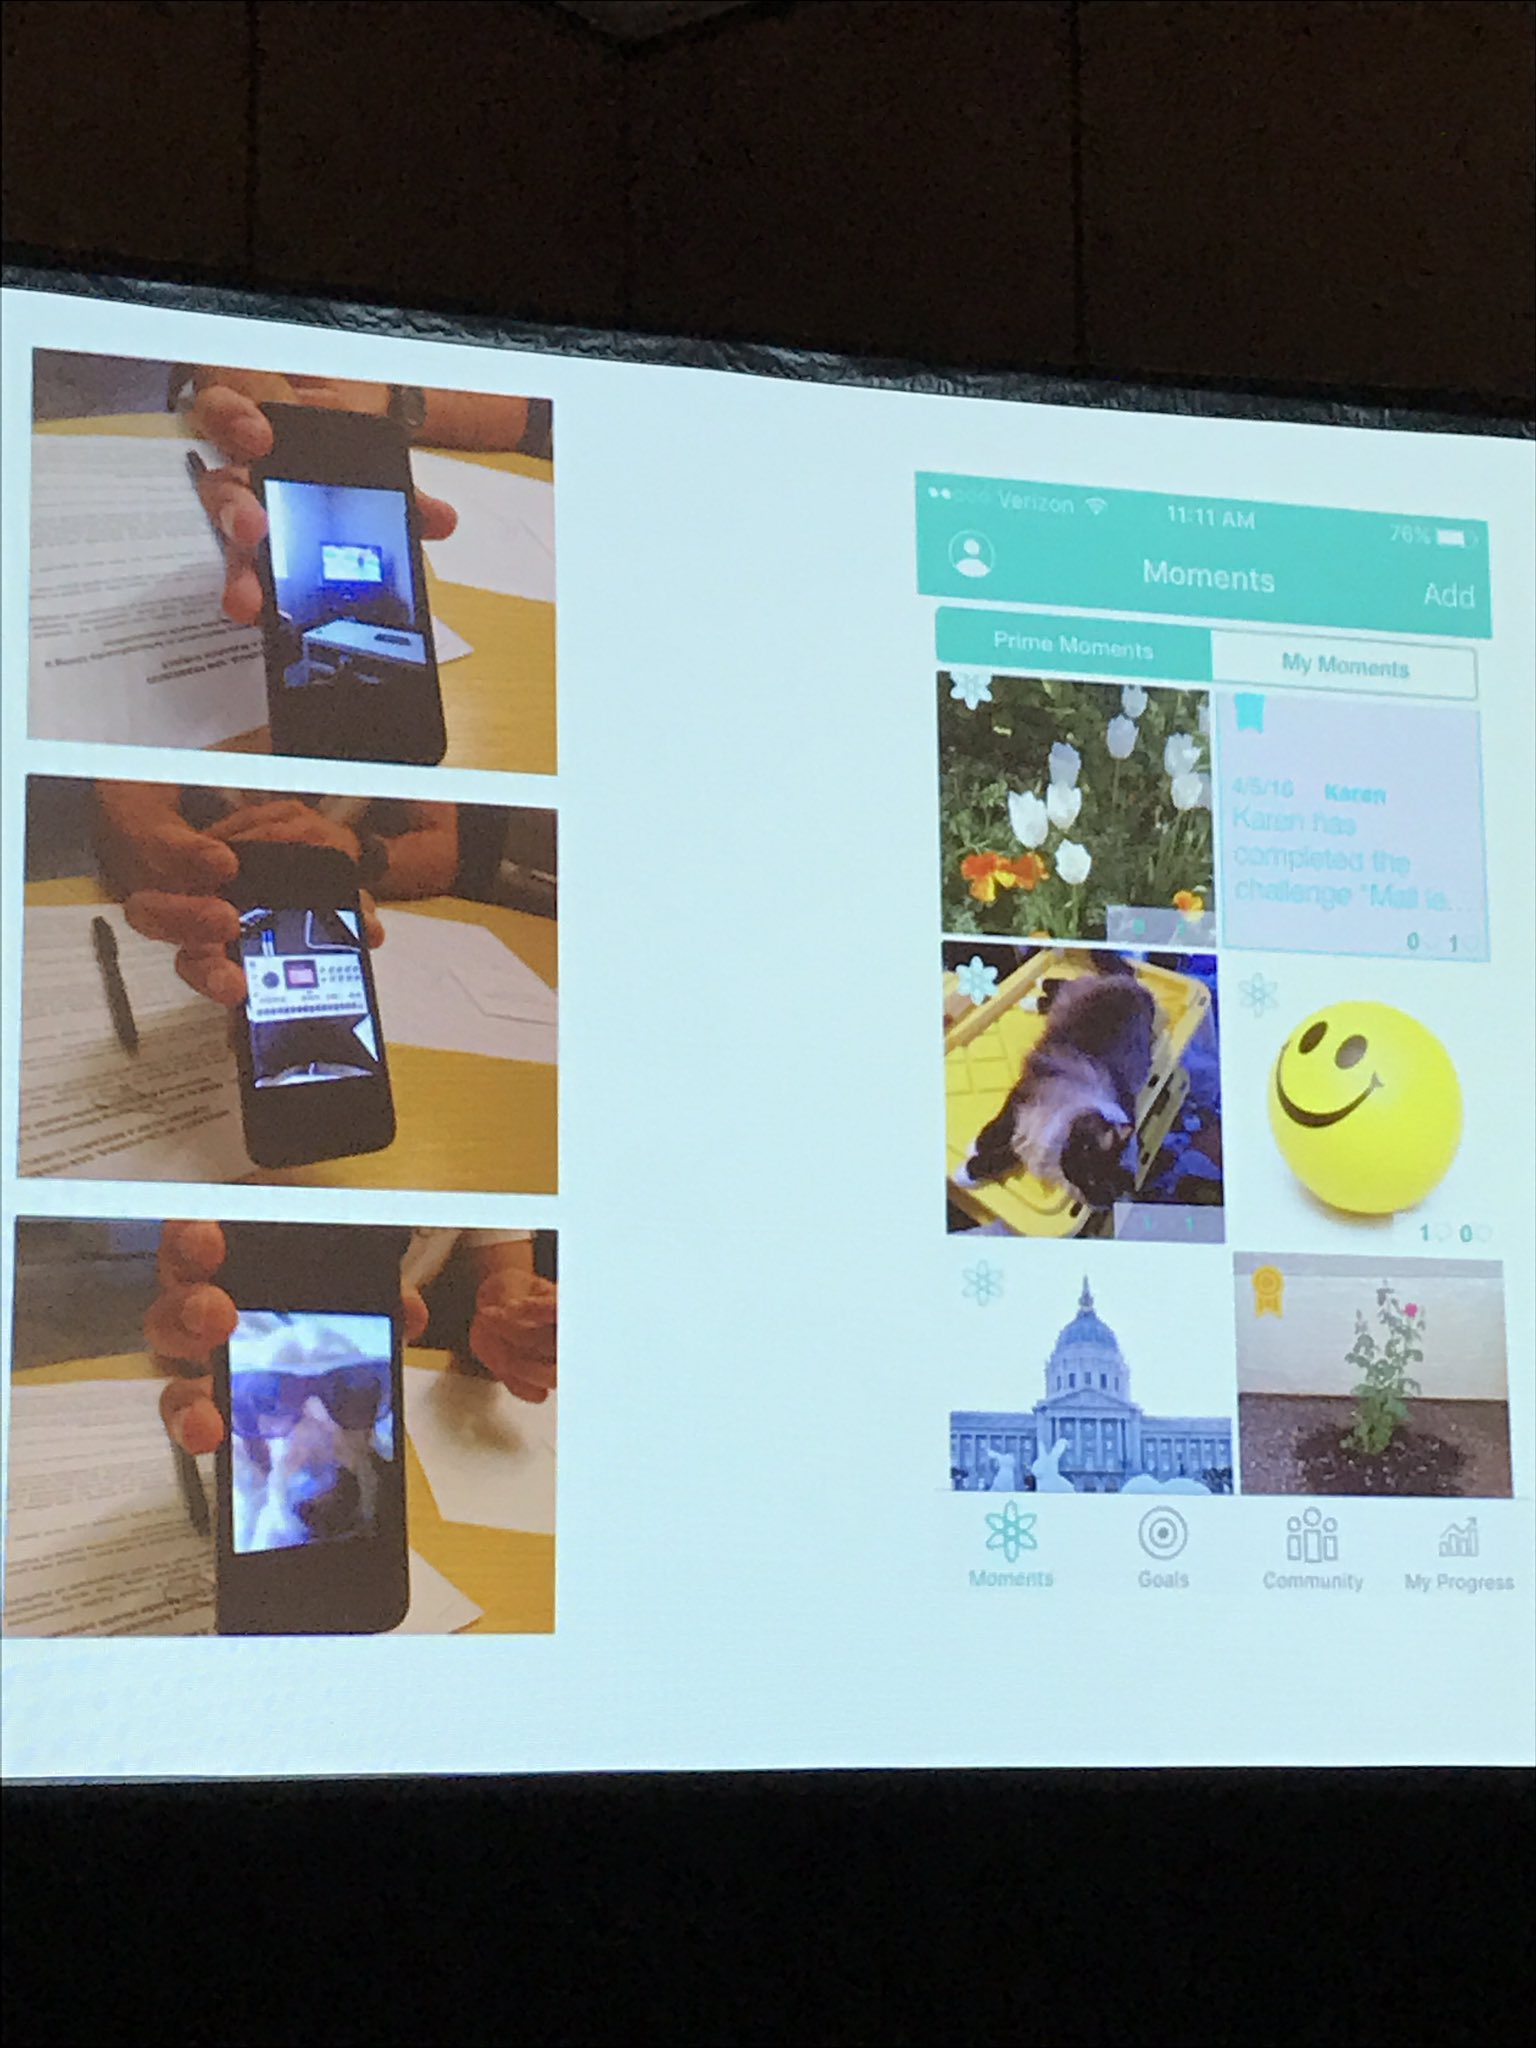 .@ideo PRIME app had users capture moments (pictures that made them happy) & clinicians share too Silvia Vergani of @ideo #NatCon17 #mHealth https://t.co/OHIeAj5Zdq